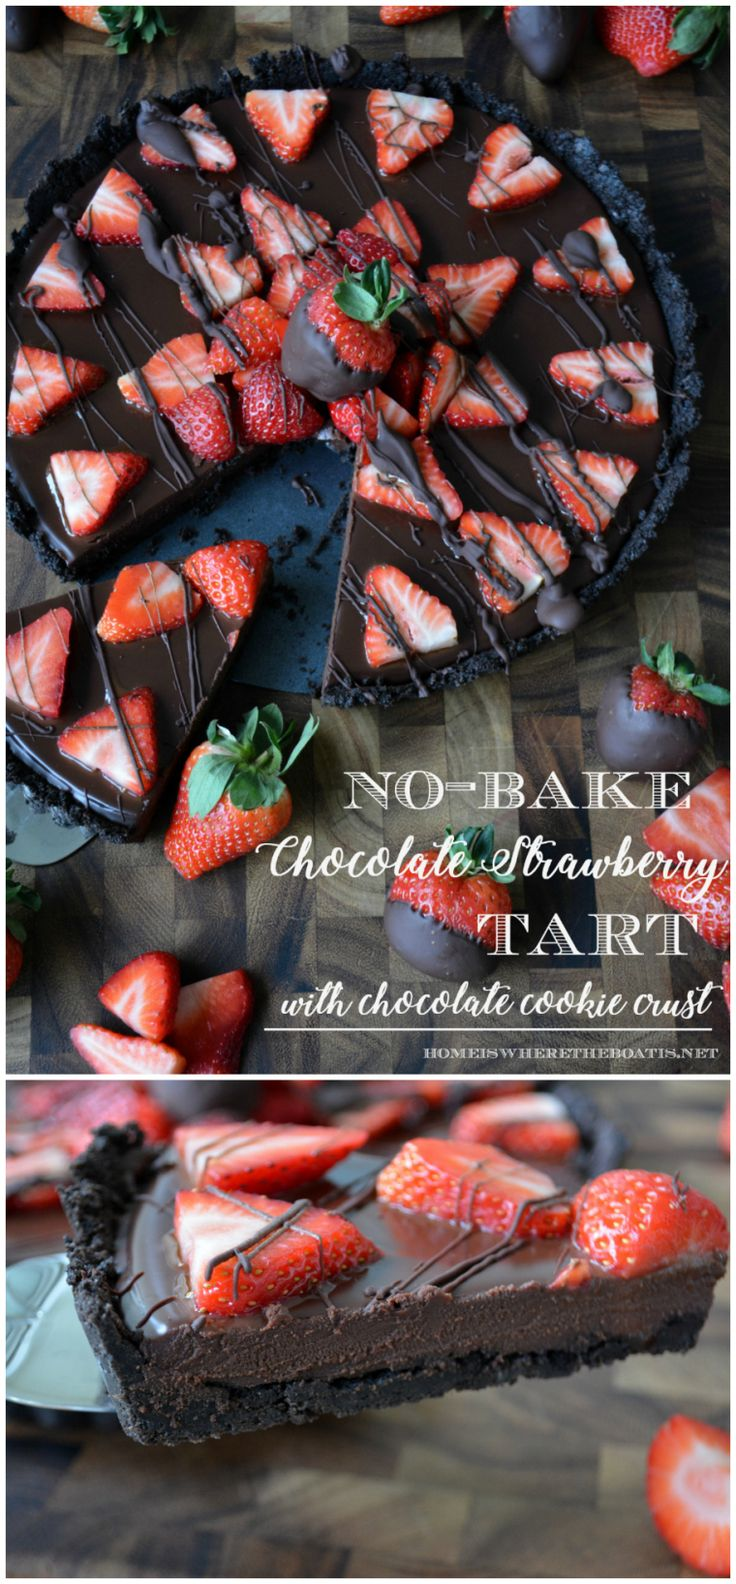 No-Bake Chocolate Strawberry Tart with Chocolate Cookie Crust! An easy splurge-worthy dessert for Valentine's Day or to satisfy your inner chocoholic! | homeiswheretheboatis.net